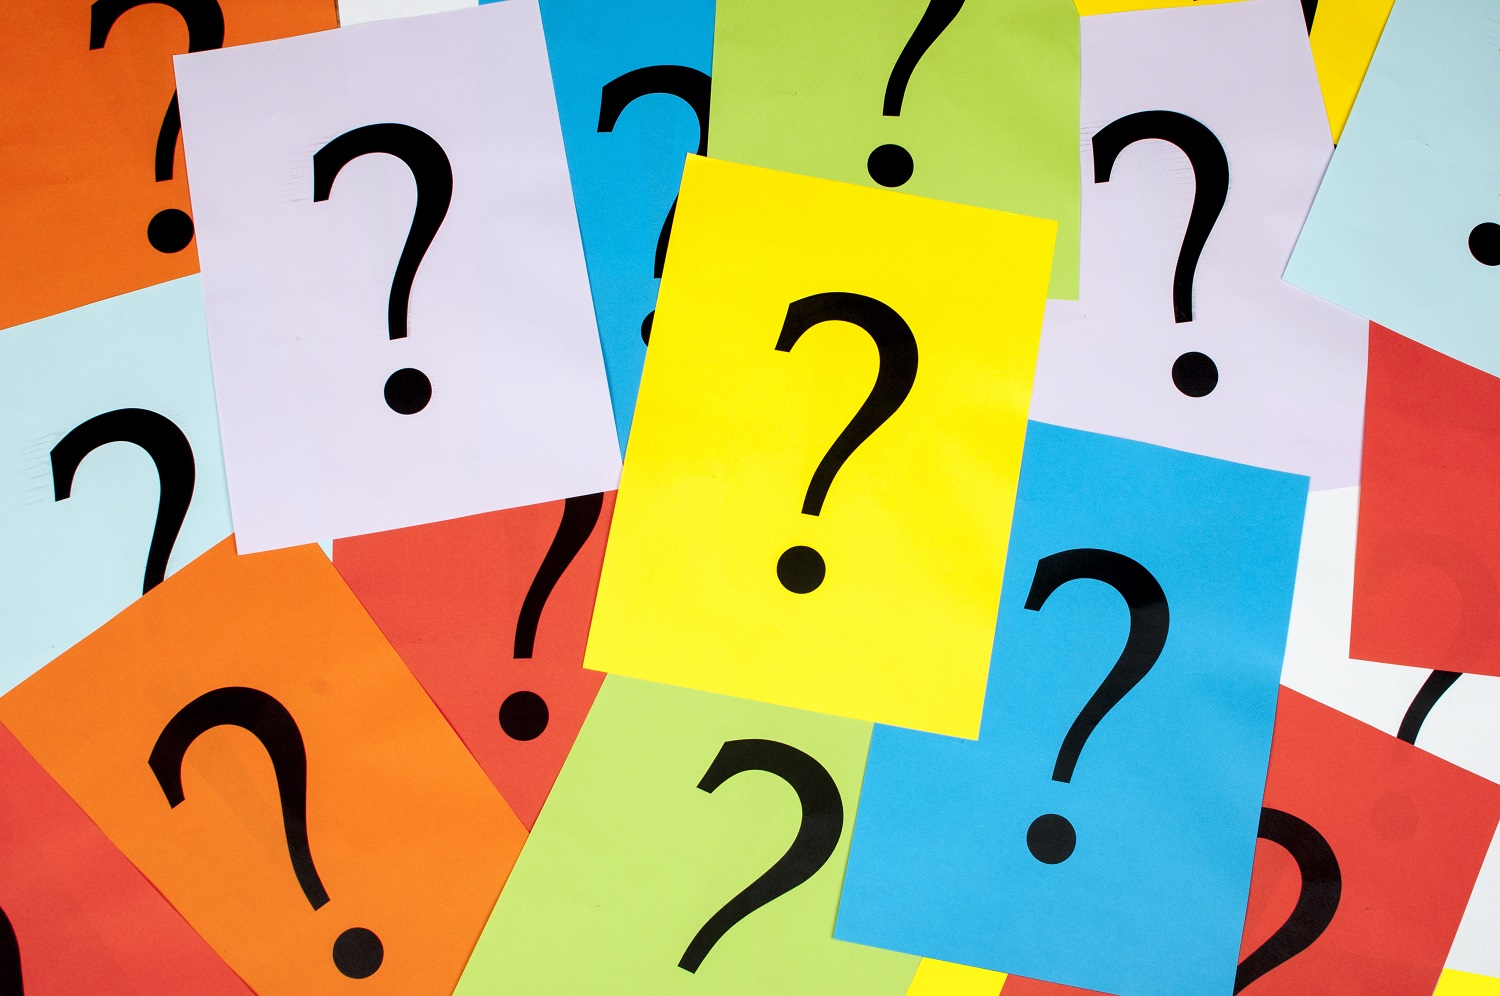 5 questions you should avoid asking at interviews